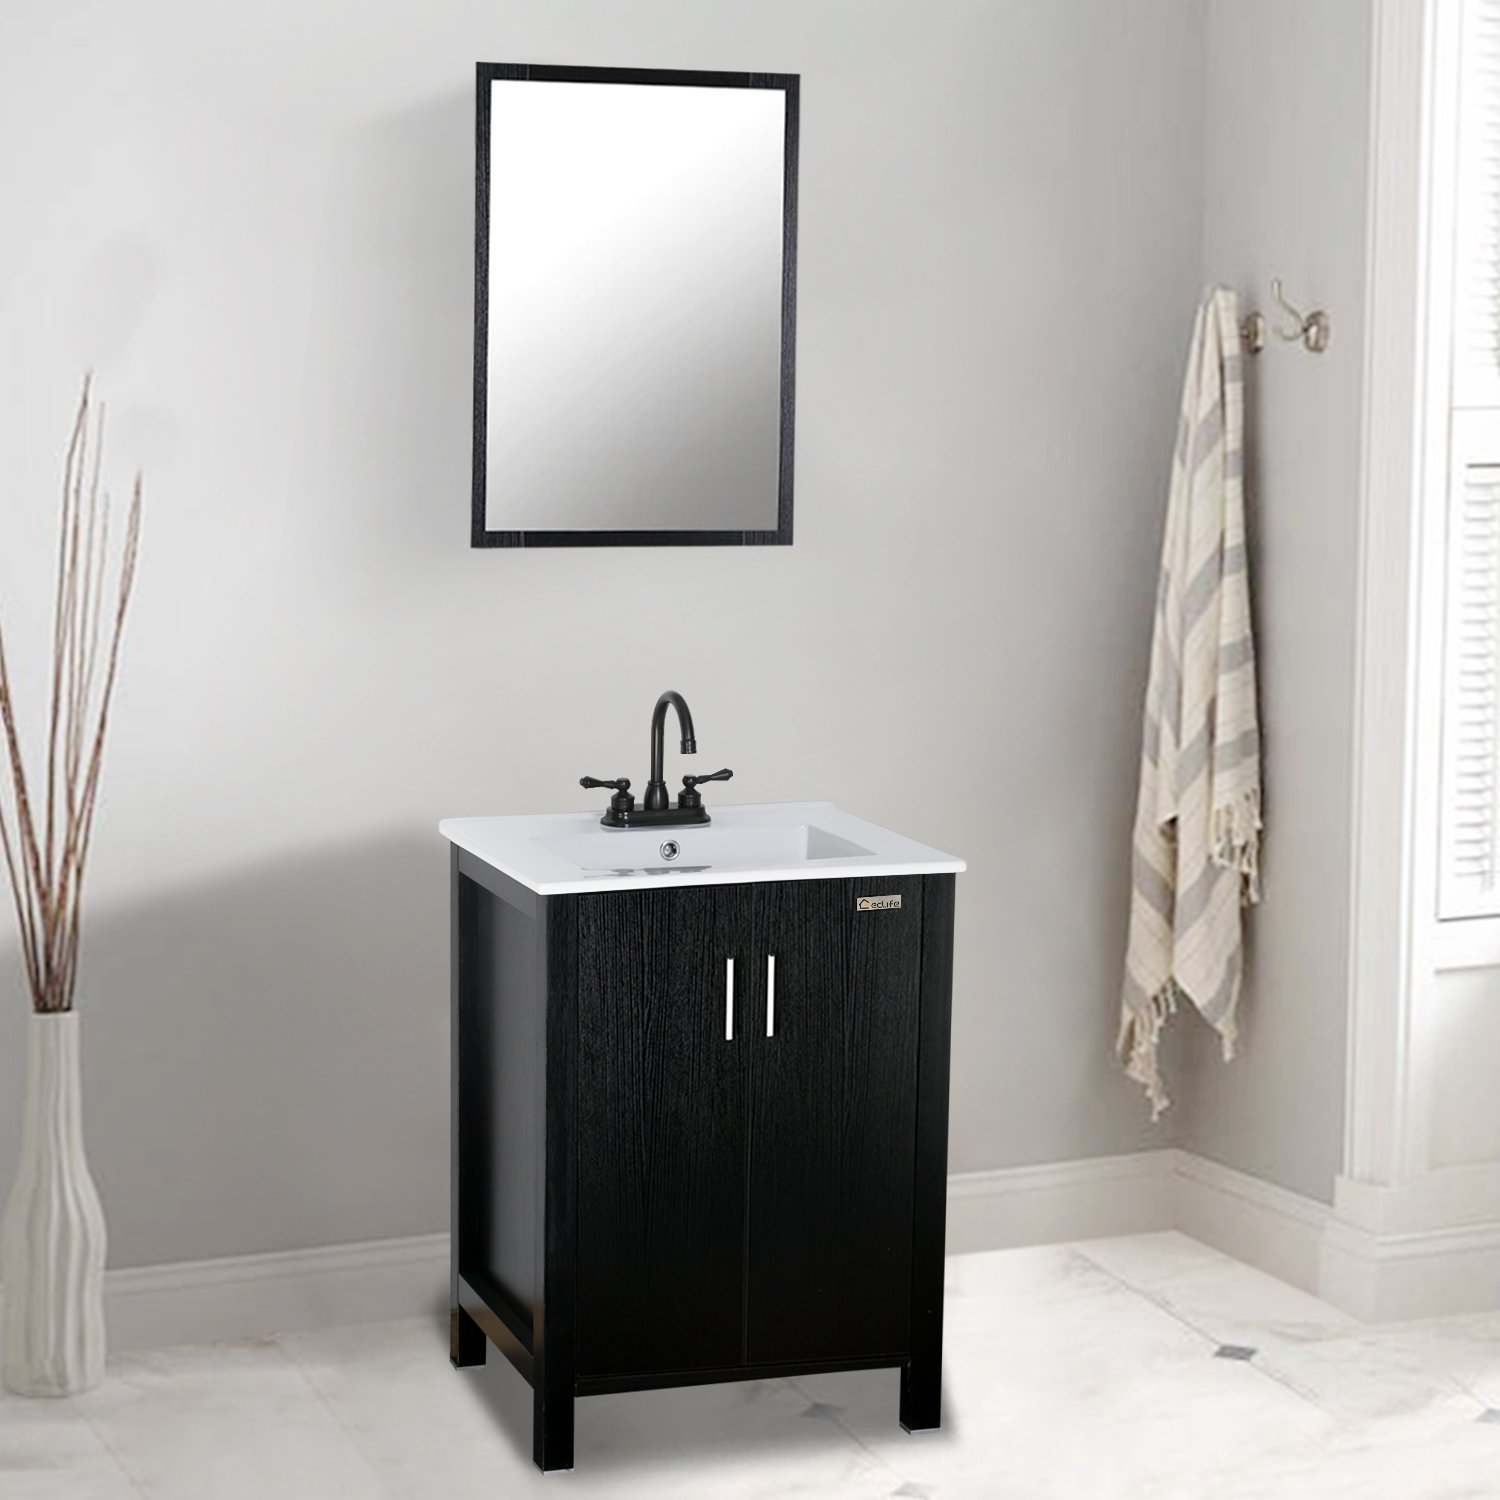 Eclife 24'' Modern Bathroom Vanity and Sink Combo Stand Cabinet and White Ceramic Vessel Sink Top & CUPC&NSF&AB1953 Solid Brass Faucet & Pop Up Drain DR03B06